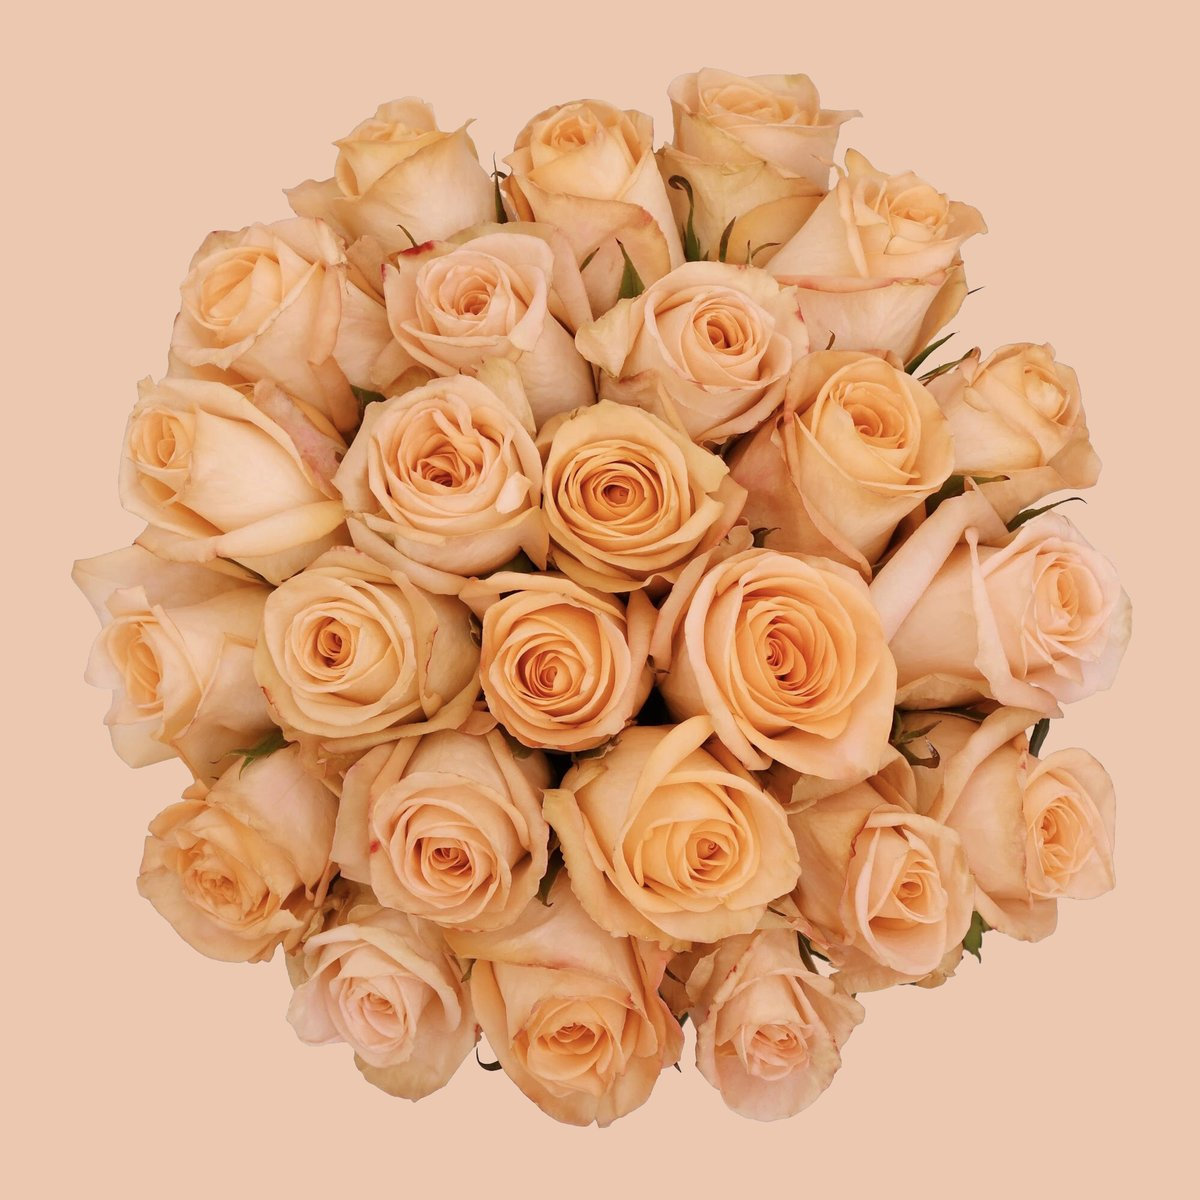 Happy Leap Year! We're celebrating the early end of February with our pretty Tiffany Roses! http://bit.ly/tiffanyroses   #Bloomingmore #leapyear #29days #blooooms #moodforfloral #florallife #florallove #floralphotography #fineartflowers #rosesofinstagram #floweraddictpic.twitter.com/iyO3OohlmJ